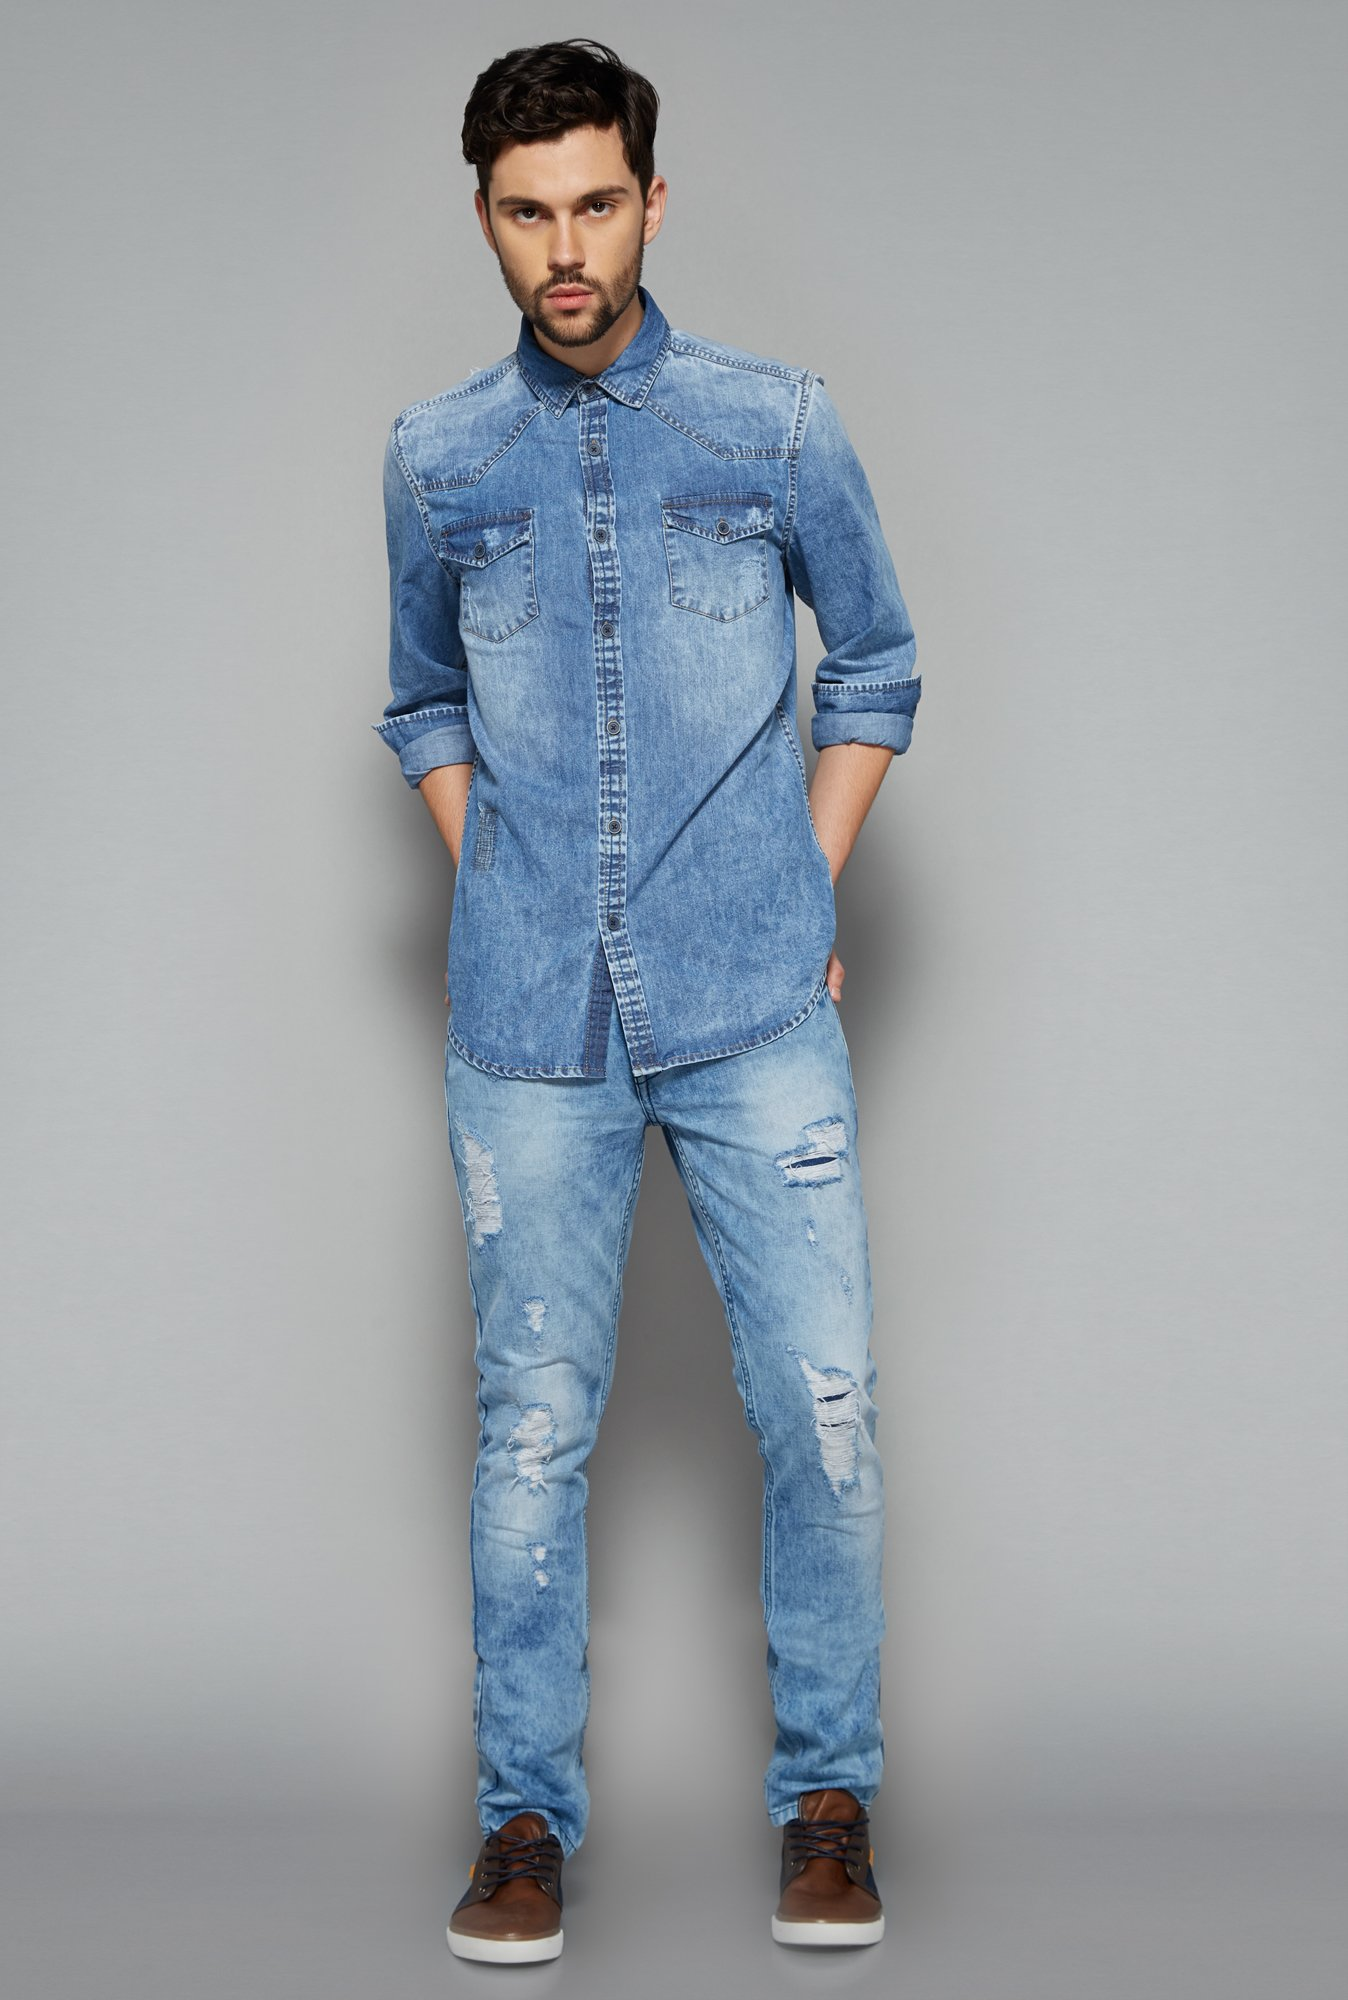 Nuon Men by Westside Blue Distressed Jeans